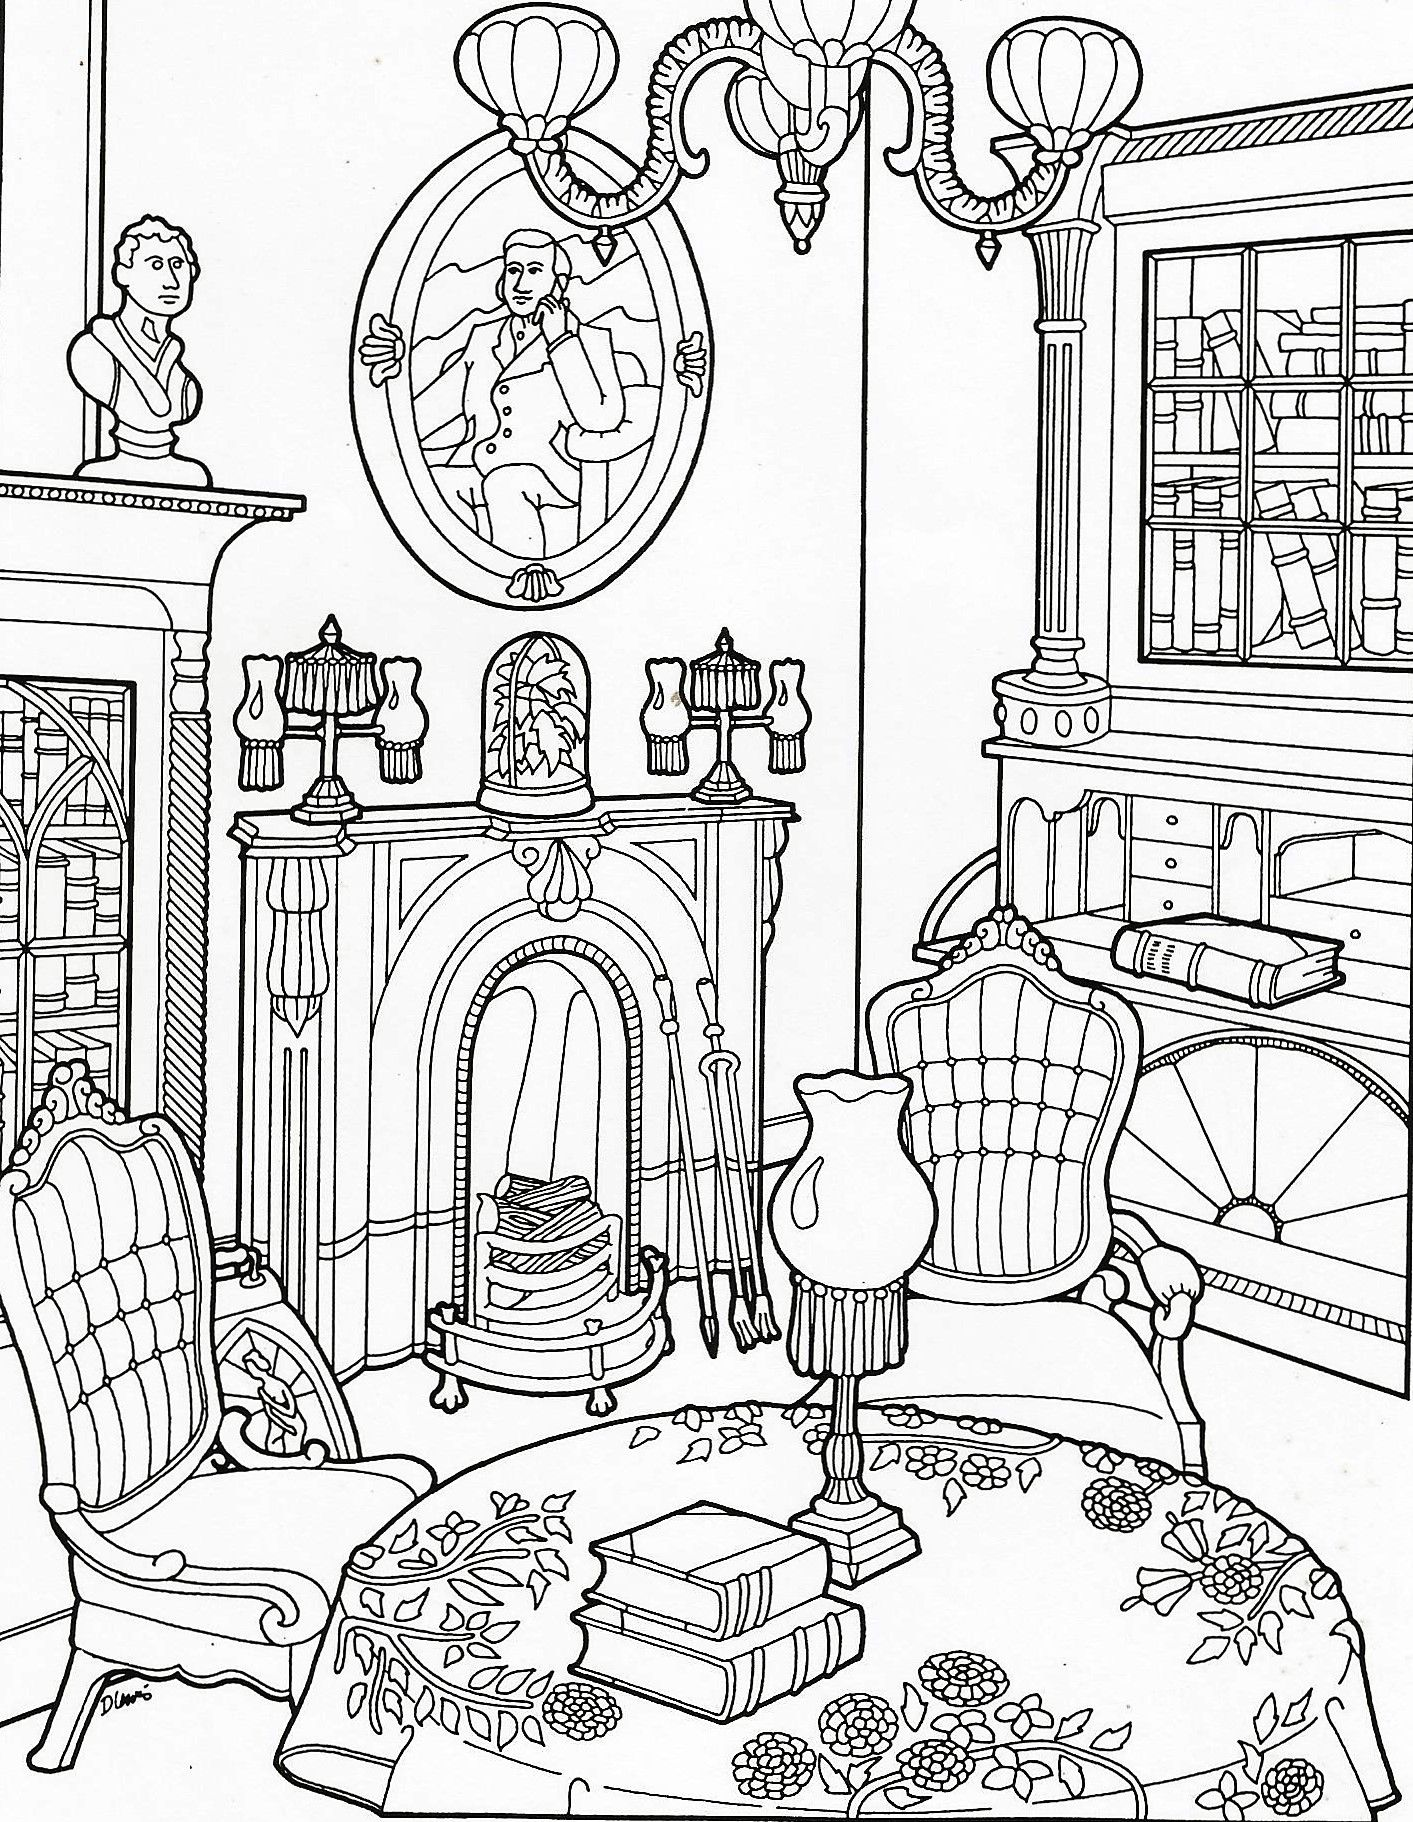 Coloring book pages coloring pages for kids house colouring pages printable coloring pages